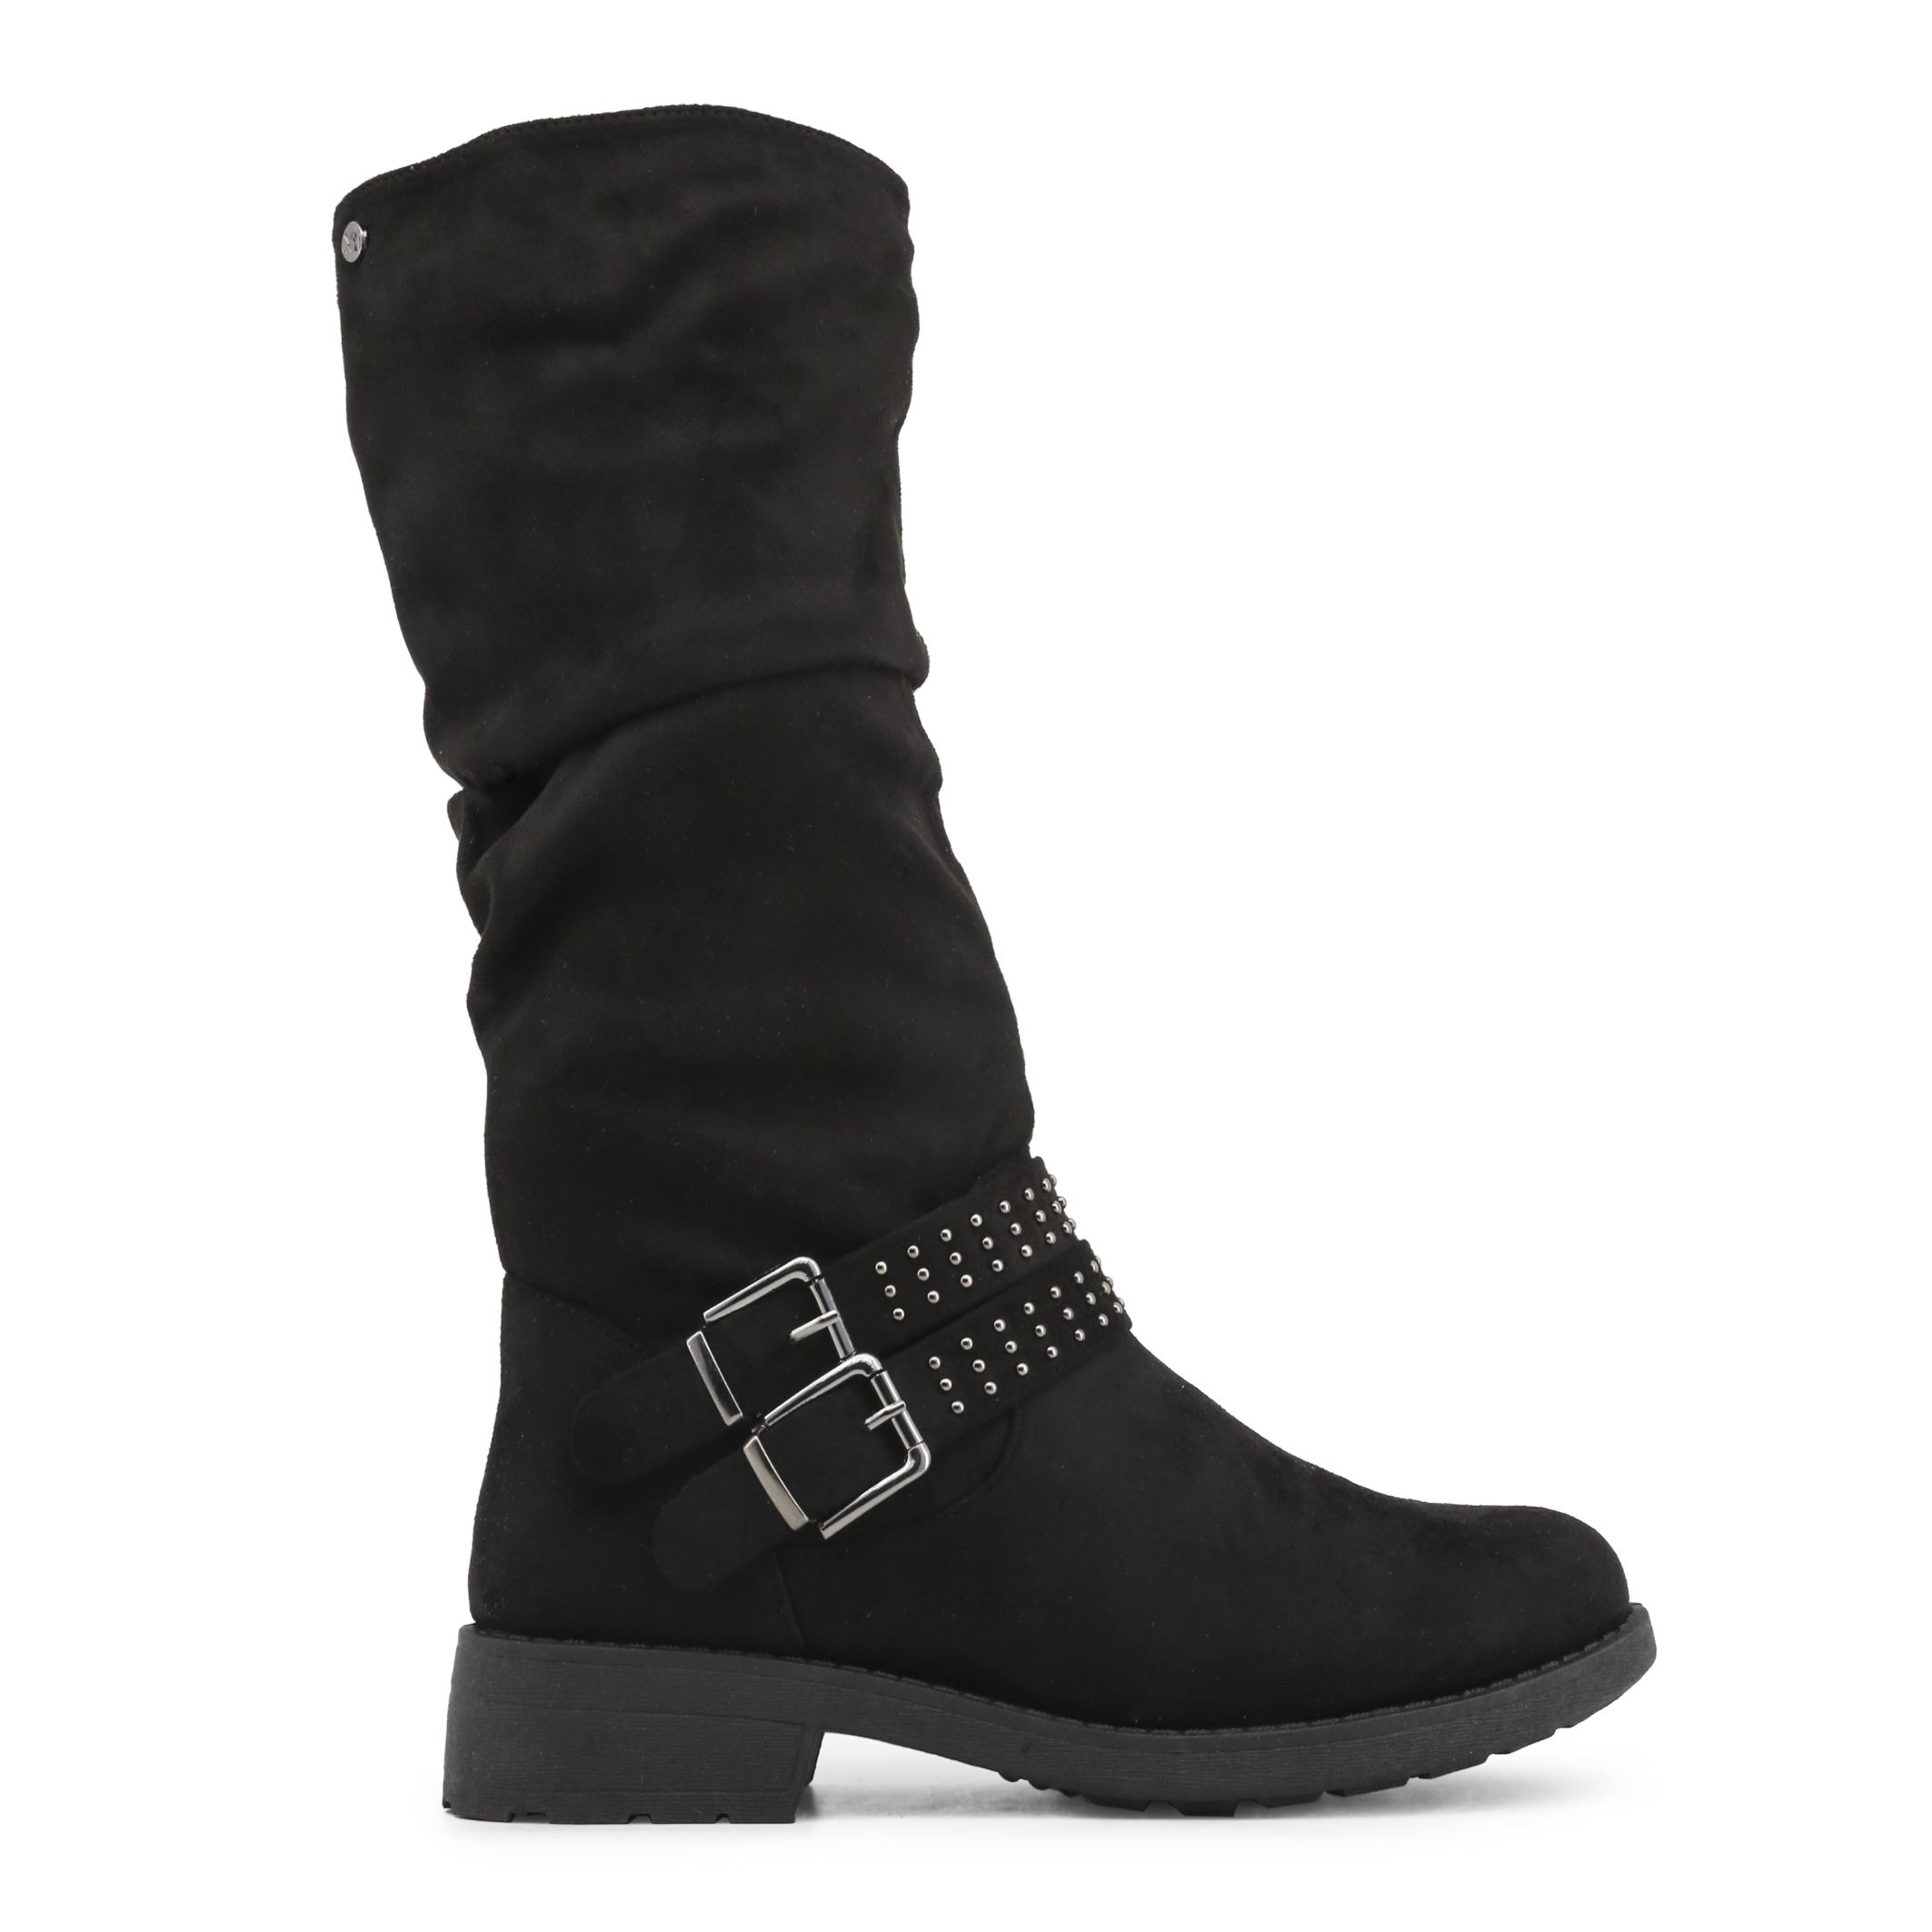 a99137b6c19 Details about Xti Women s Black High Boots Side Zip Closing w  Buckle    Studs